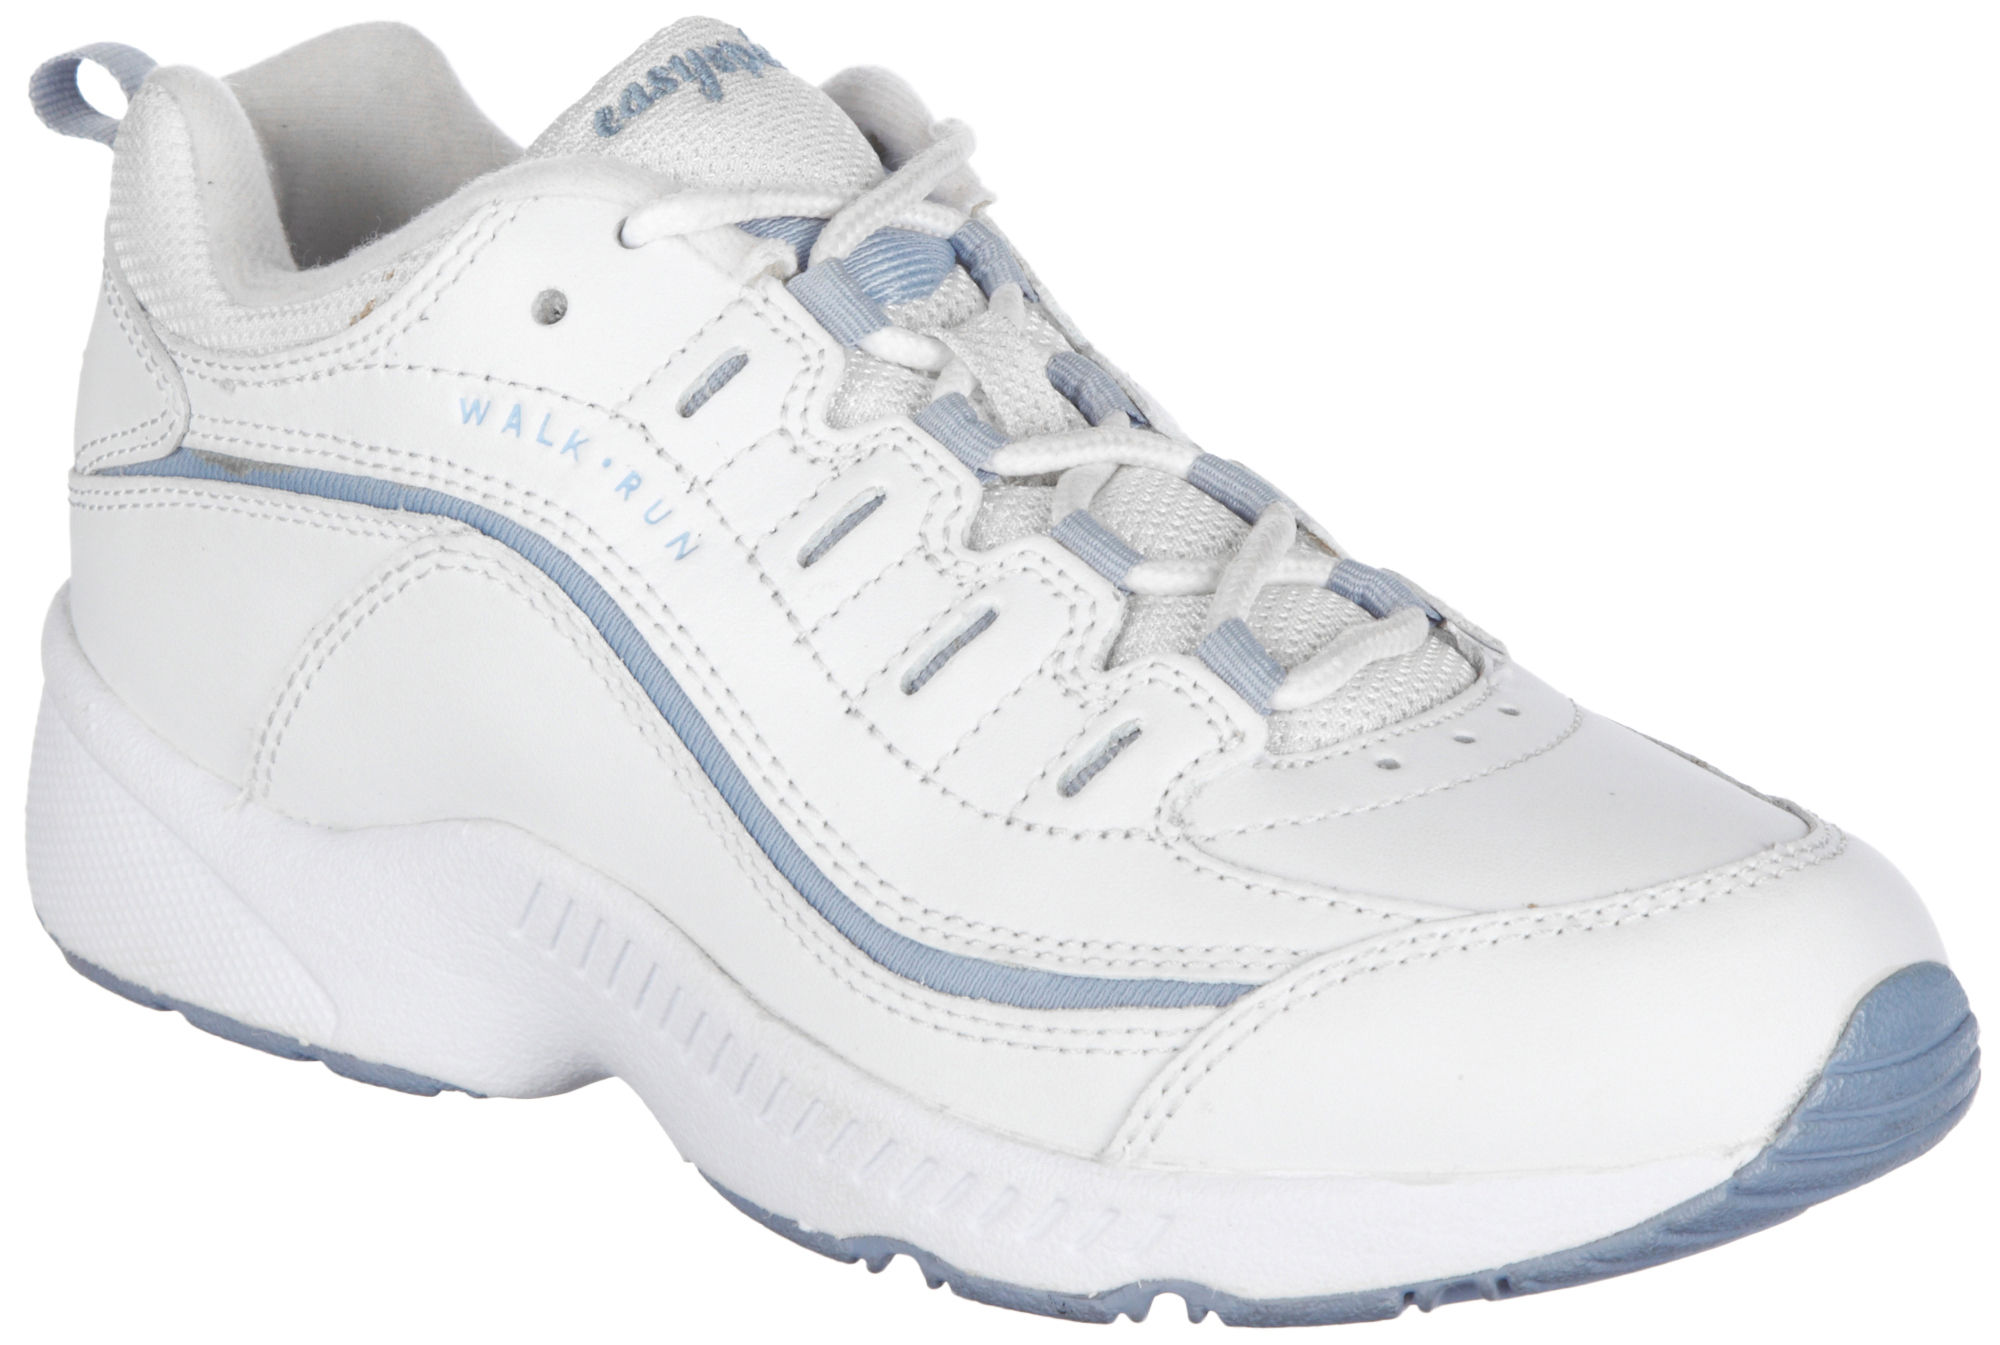 Walking Shoes For Women Over